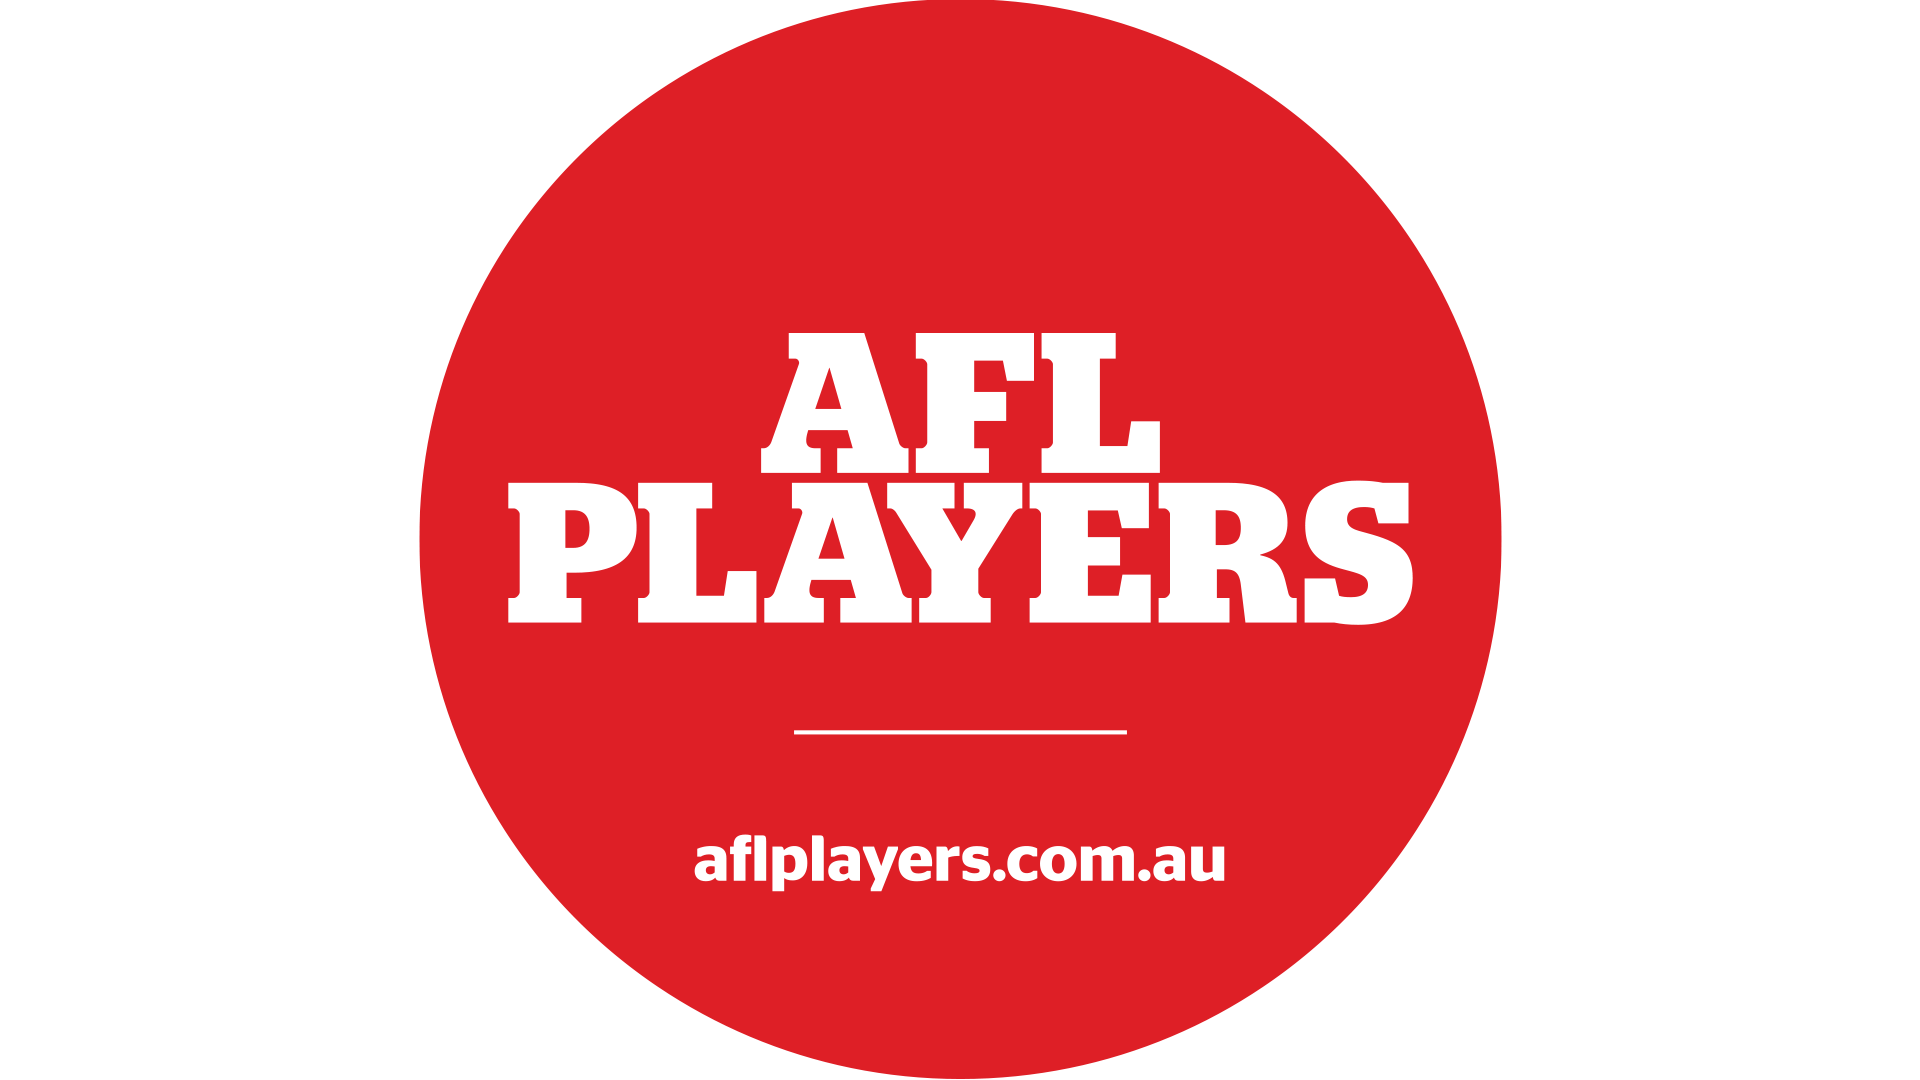 AFL Players' Association